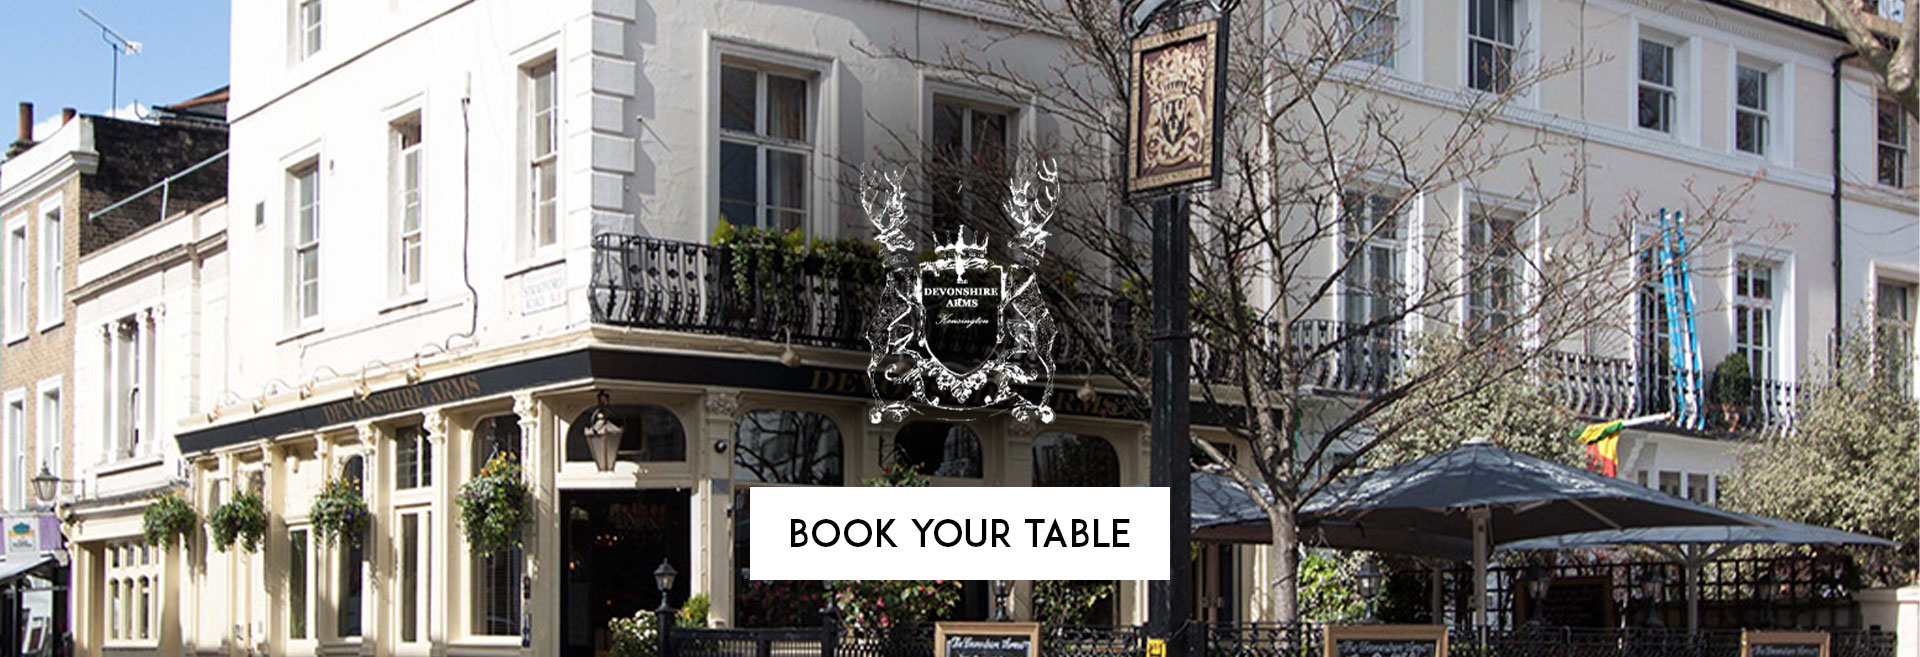 Book Your Table The Devonshire Arms